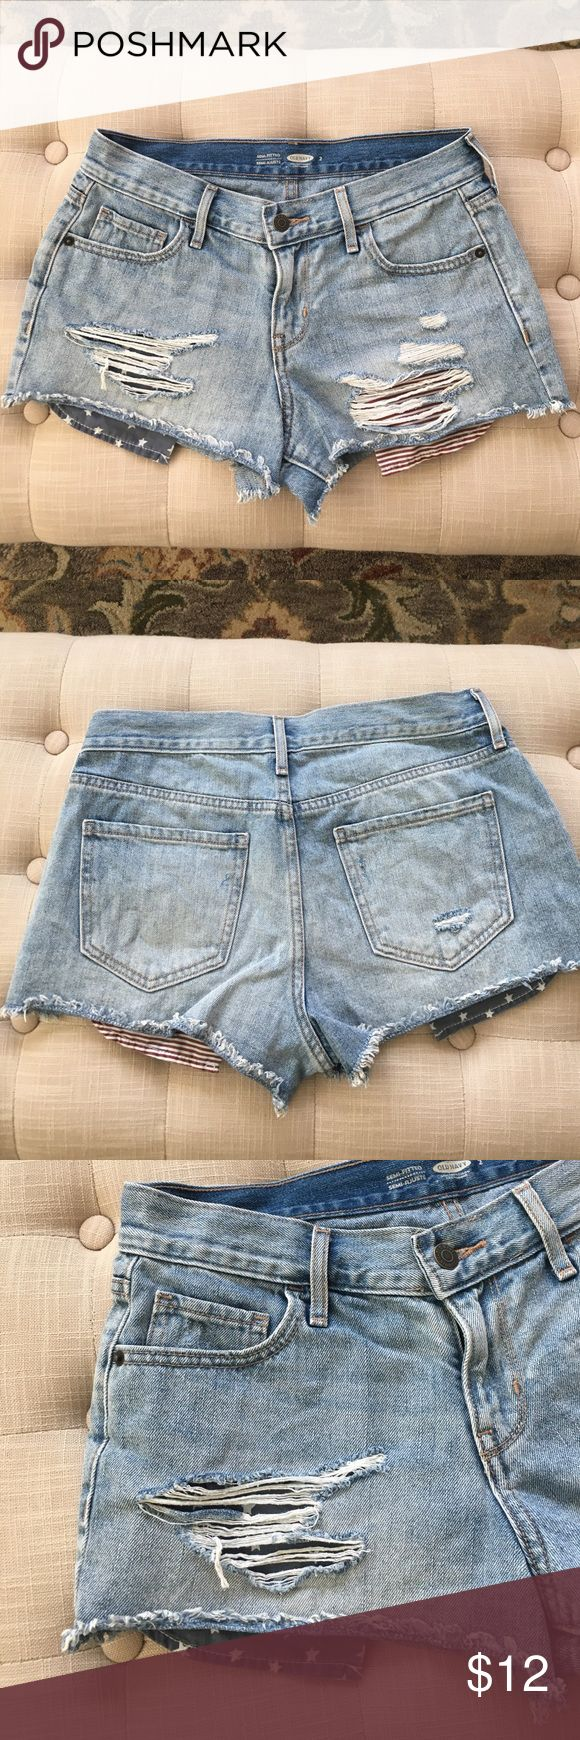 Old Navy American Flag Destroyed Jean Shorts  Old Navy American Flag Destroyed Jean Shorts, worn only one time for the 4th of July, Size 2, One Pocket is blue with white stripes the other is red with white stripes. Old Navy Shorts Jean Shorts